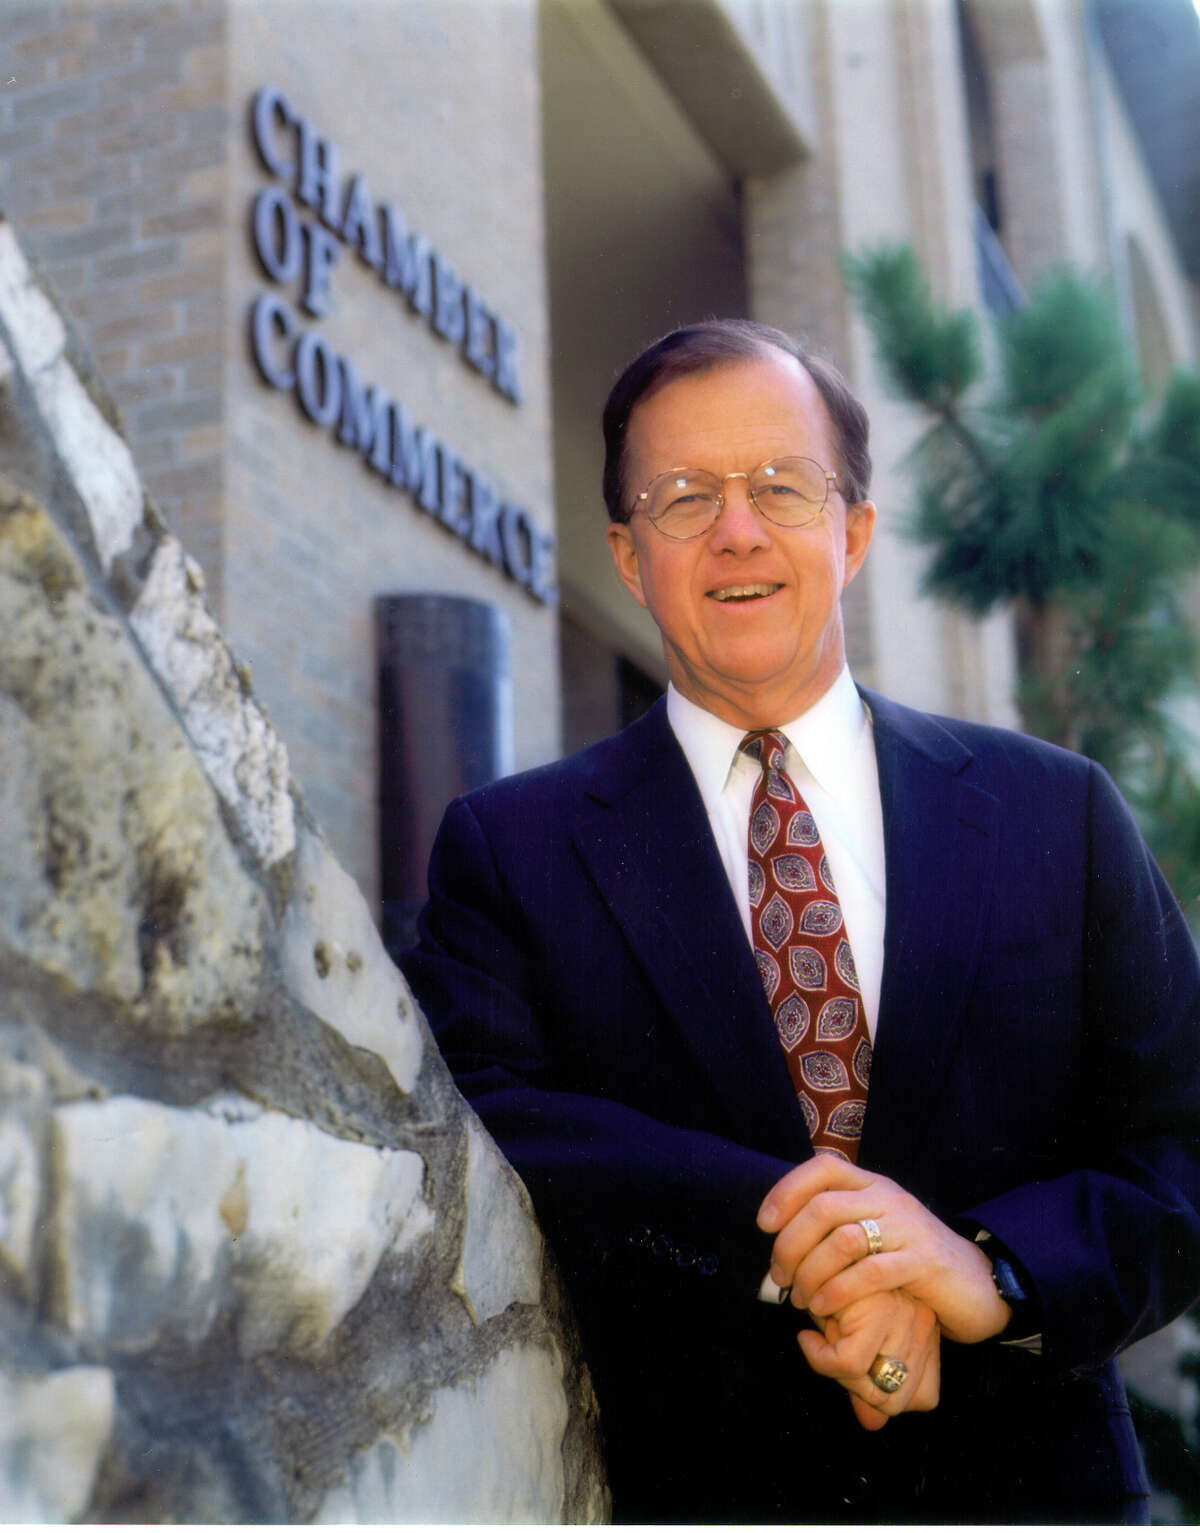 Joe Krier is the city councilman for District 9 and former president and CEO of the Greater San Antonio Chamber of Commerce.